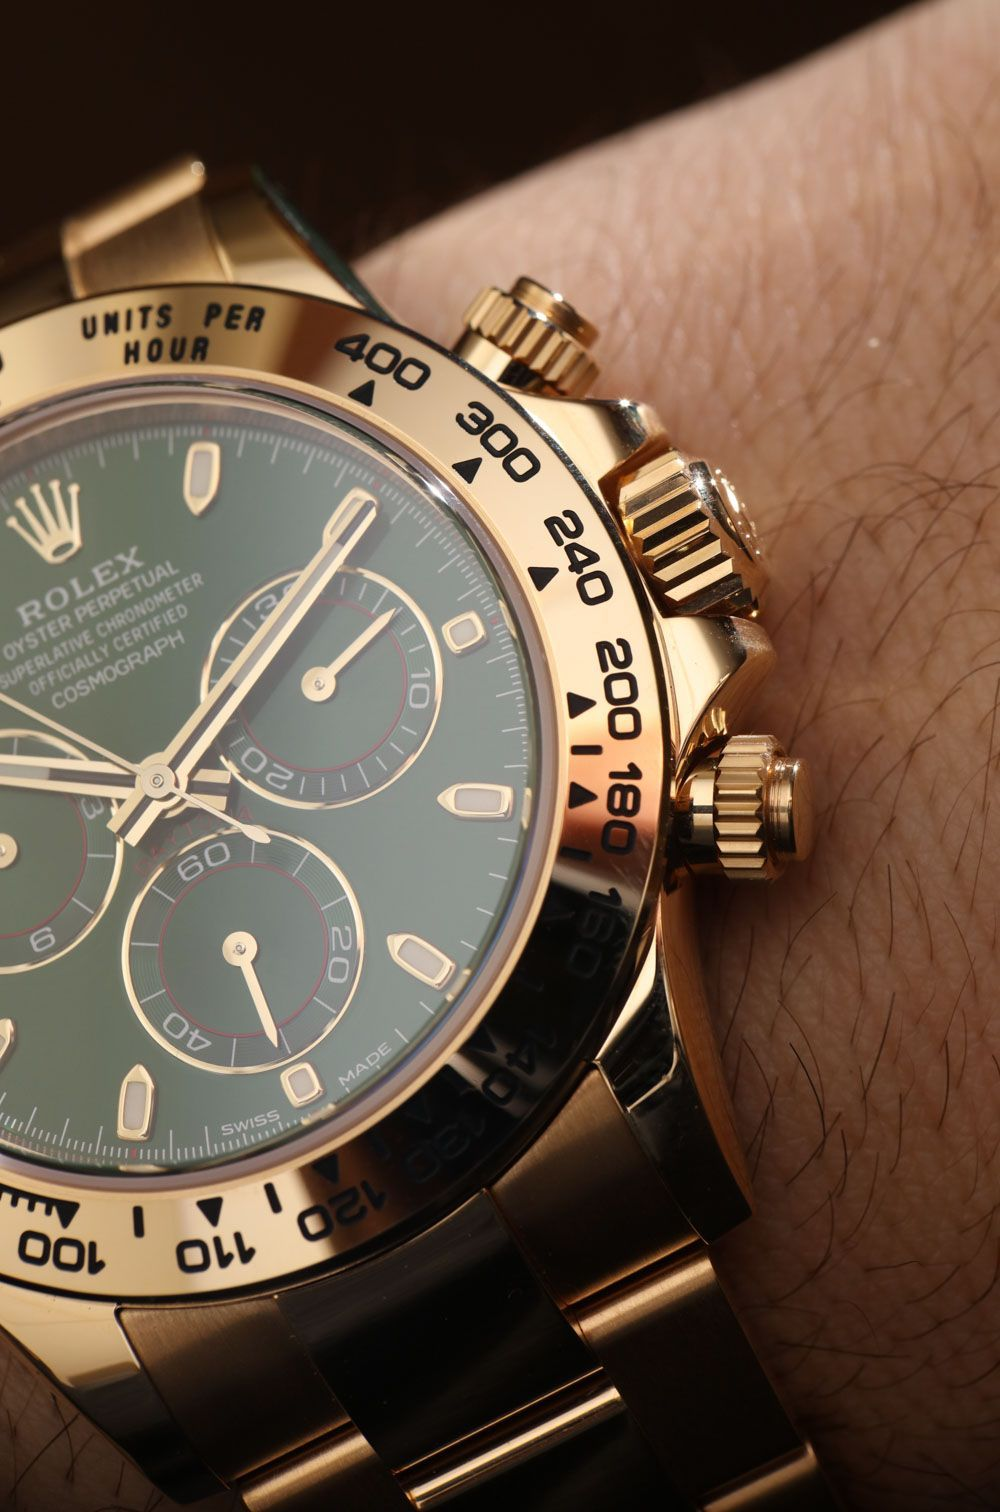 Rolex Cosmograph Daytona 116508 Green Dial 18k Yellow Gold Watch Hands-On fd65be757c